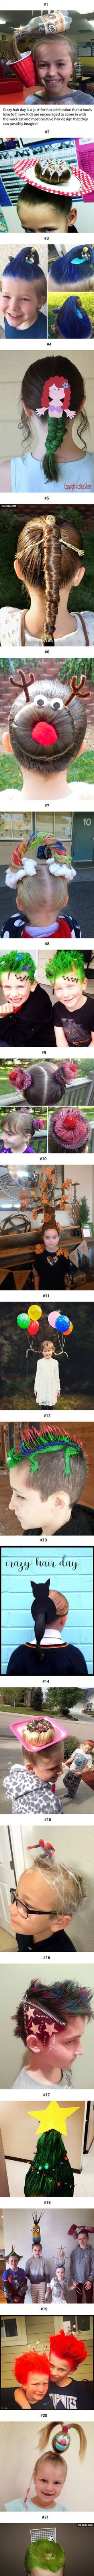 21 Best Crazy Hair Day Dos Ever! on 9GAG